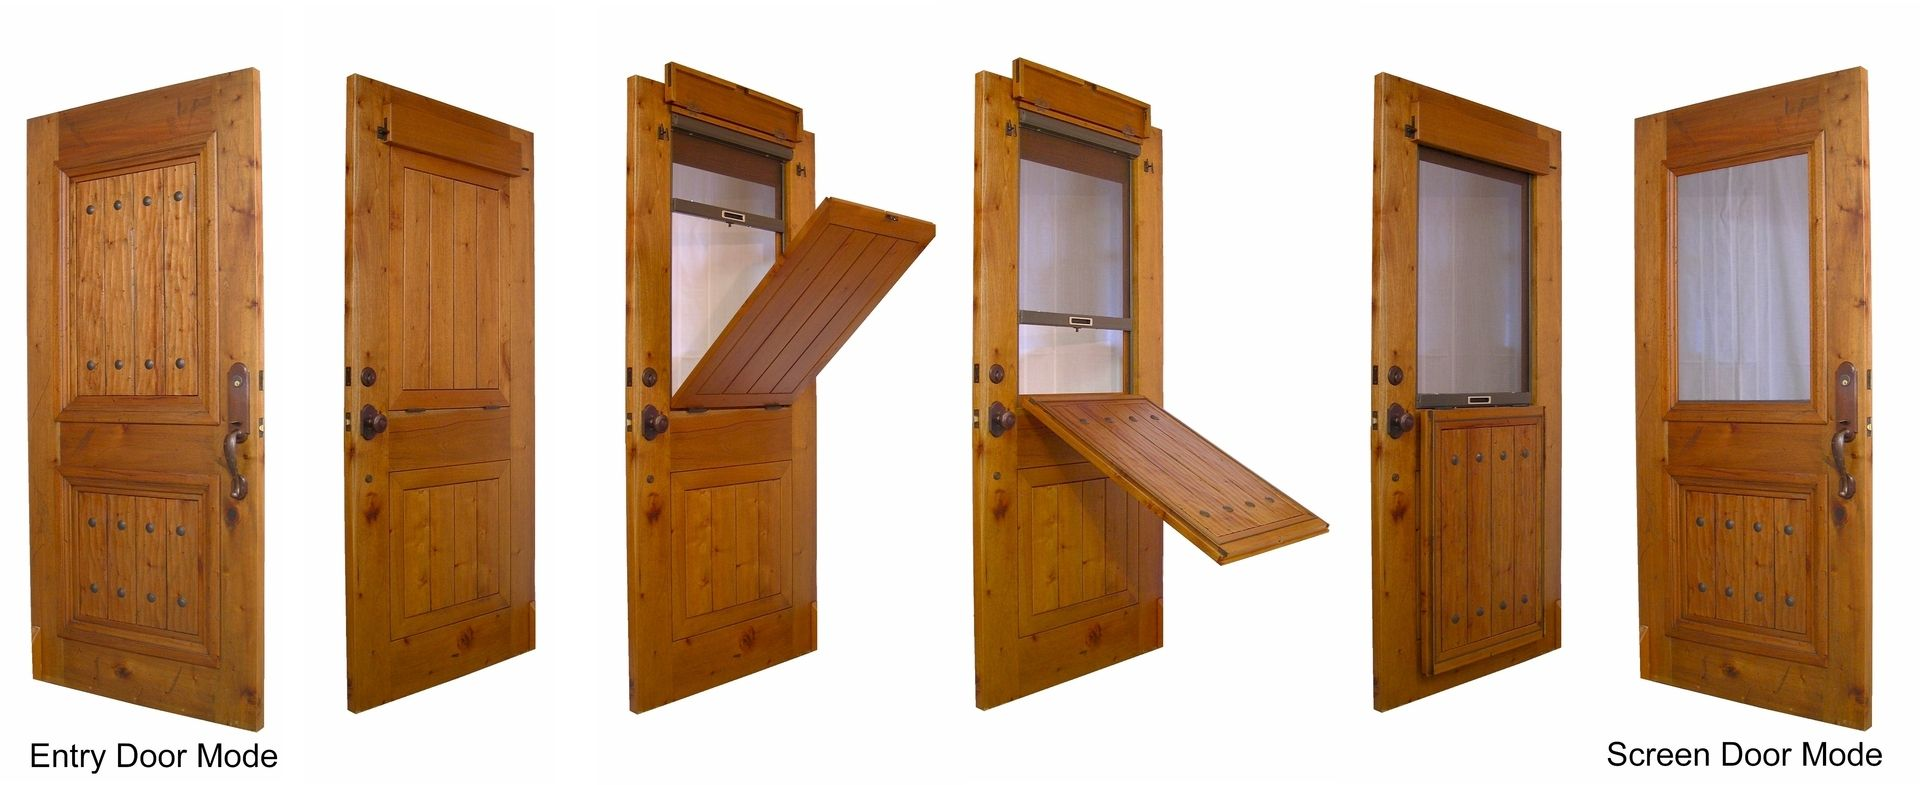 Hand Crafted The Breeze Entry Door By Christie 39 S Wood And Glass